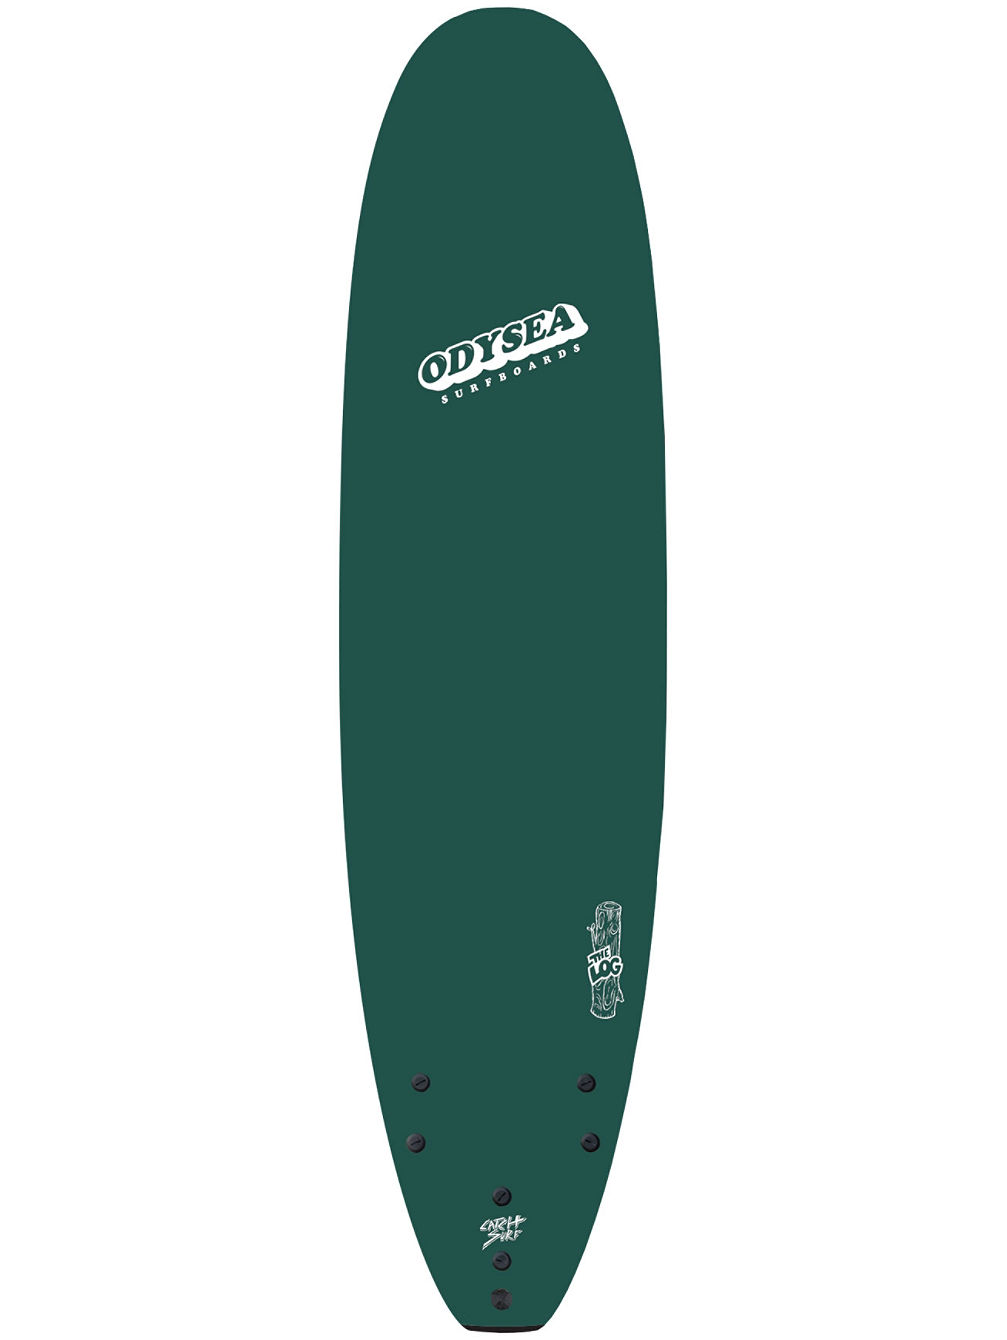 Odysea Log. Johnny Redmond 7'0 Surfboard